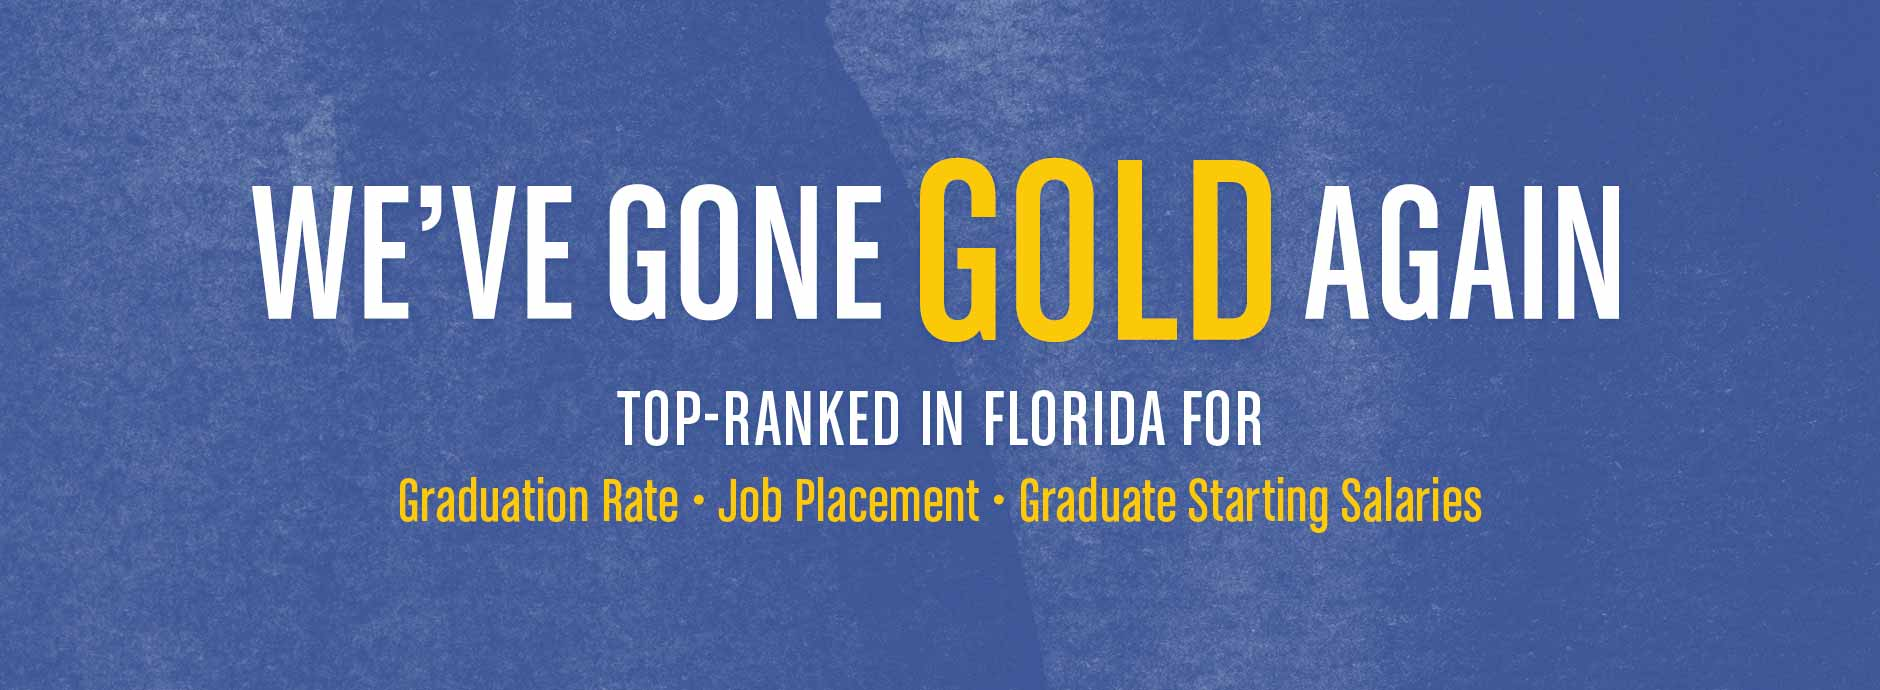 We've Gone Gold Again. Top Ranked in Florida for Graduation Rate, Job Placement and Graduate Starting Salaries